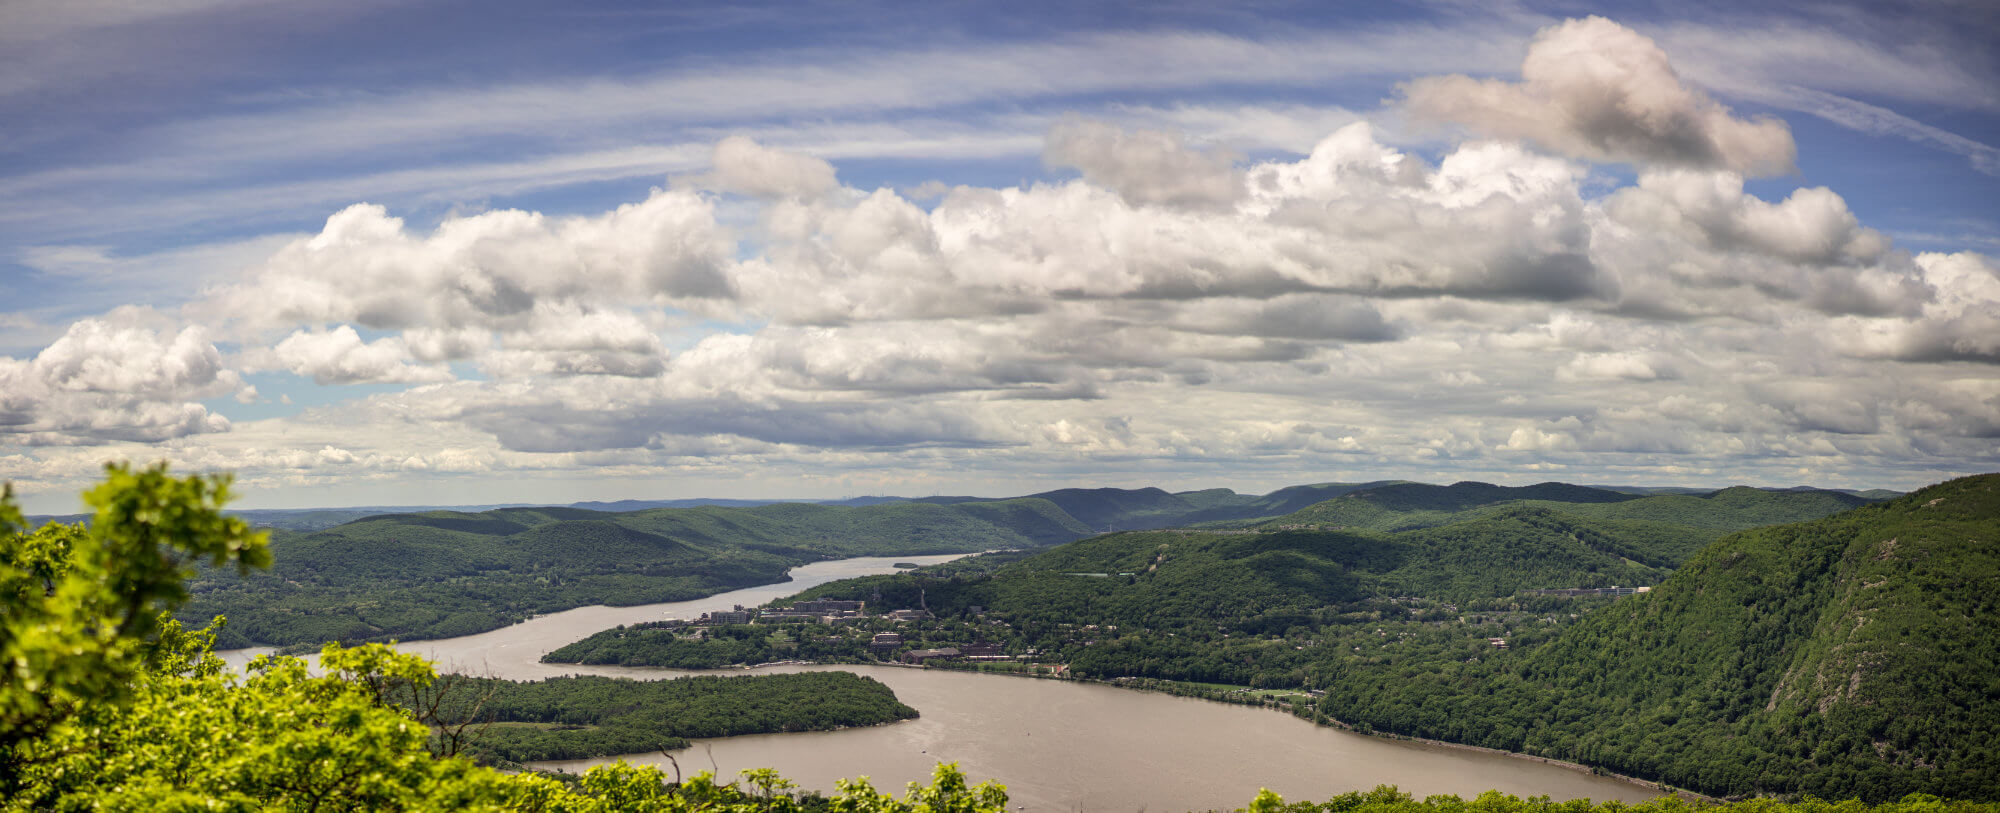 Clouds over the Hudson River